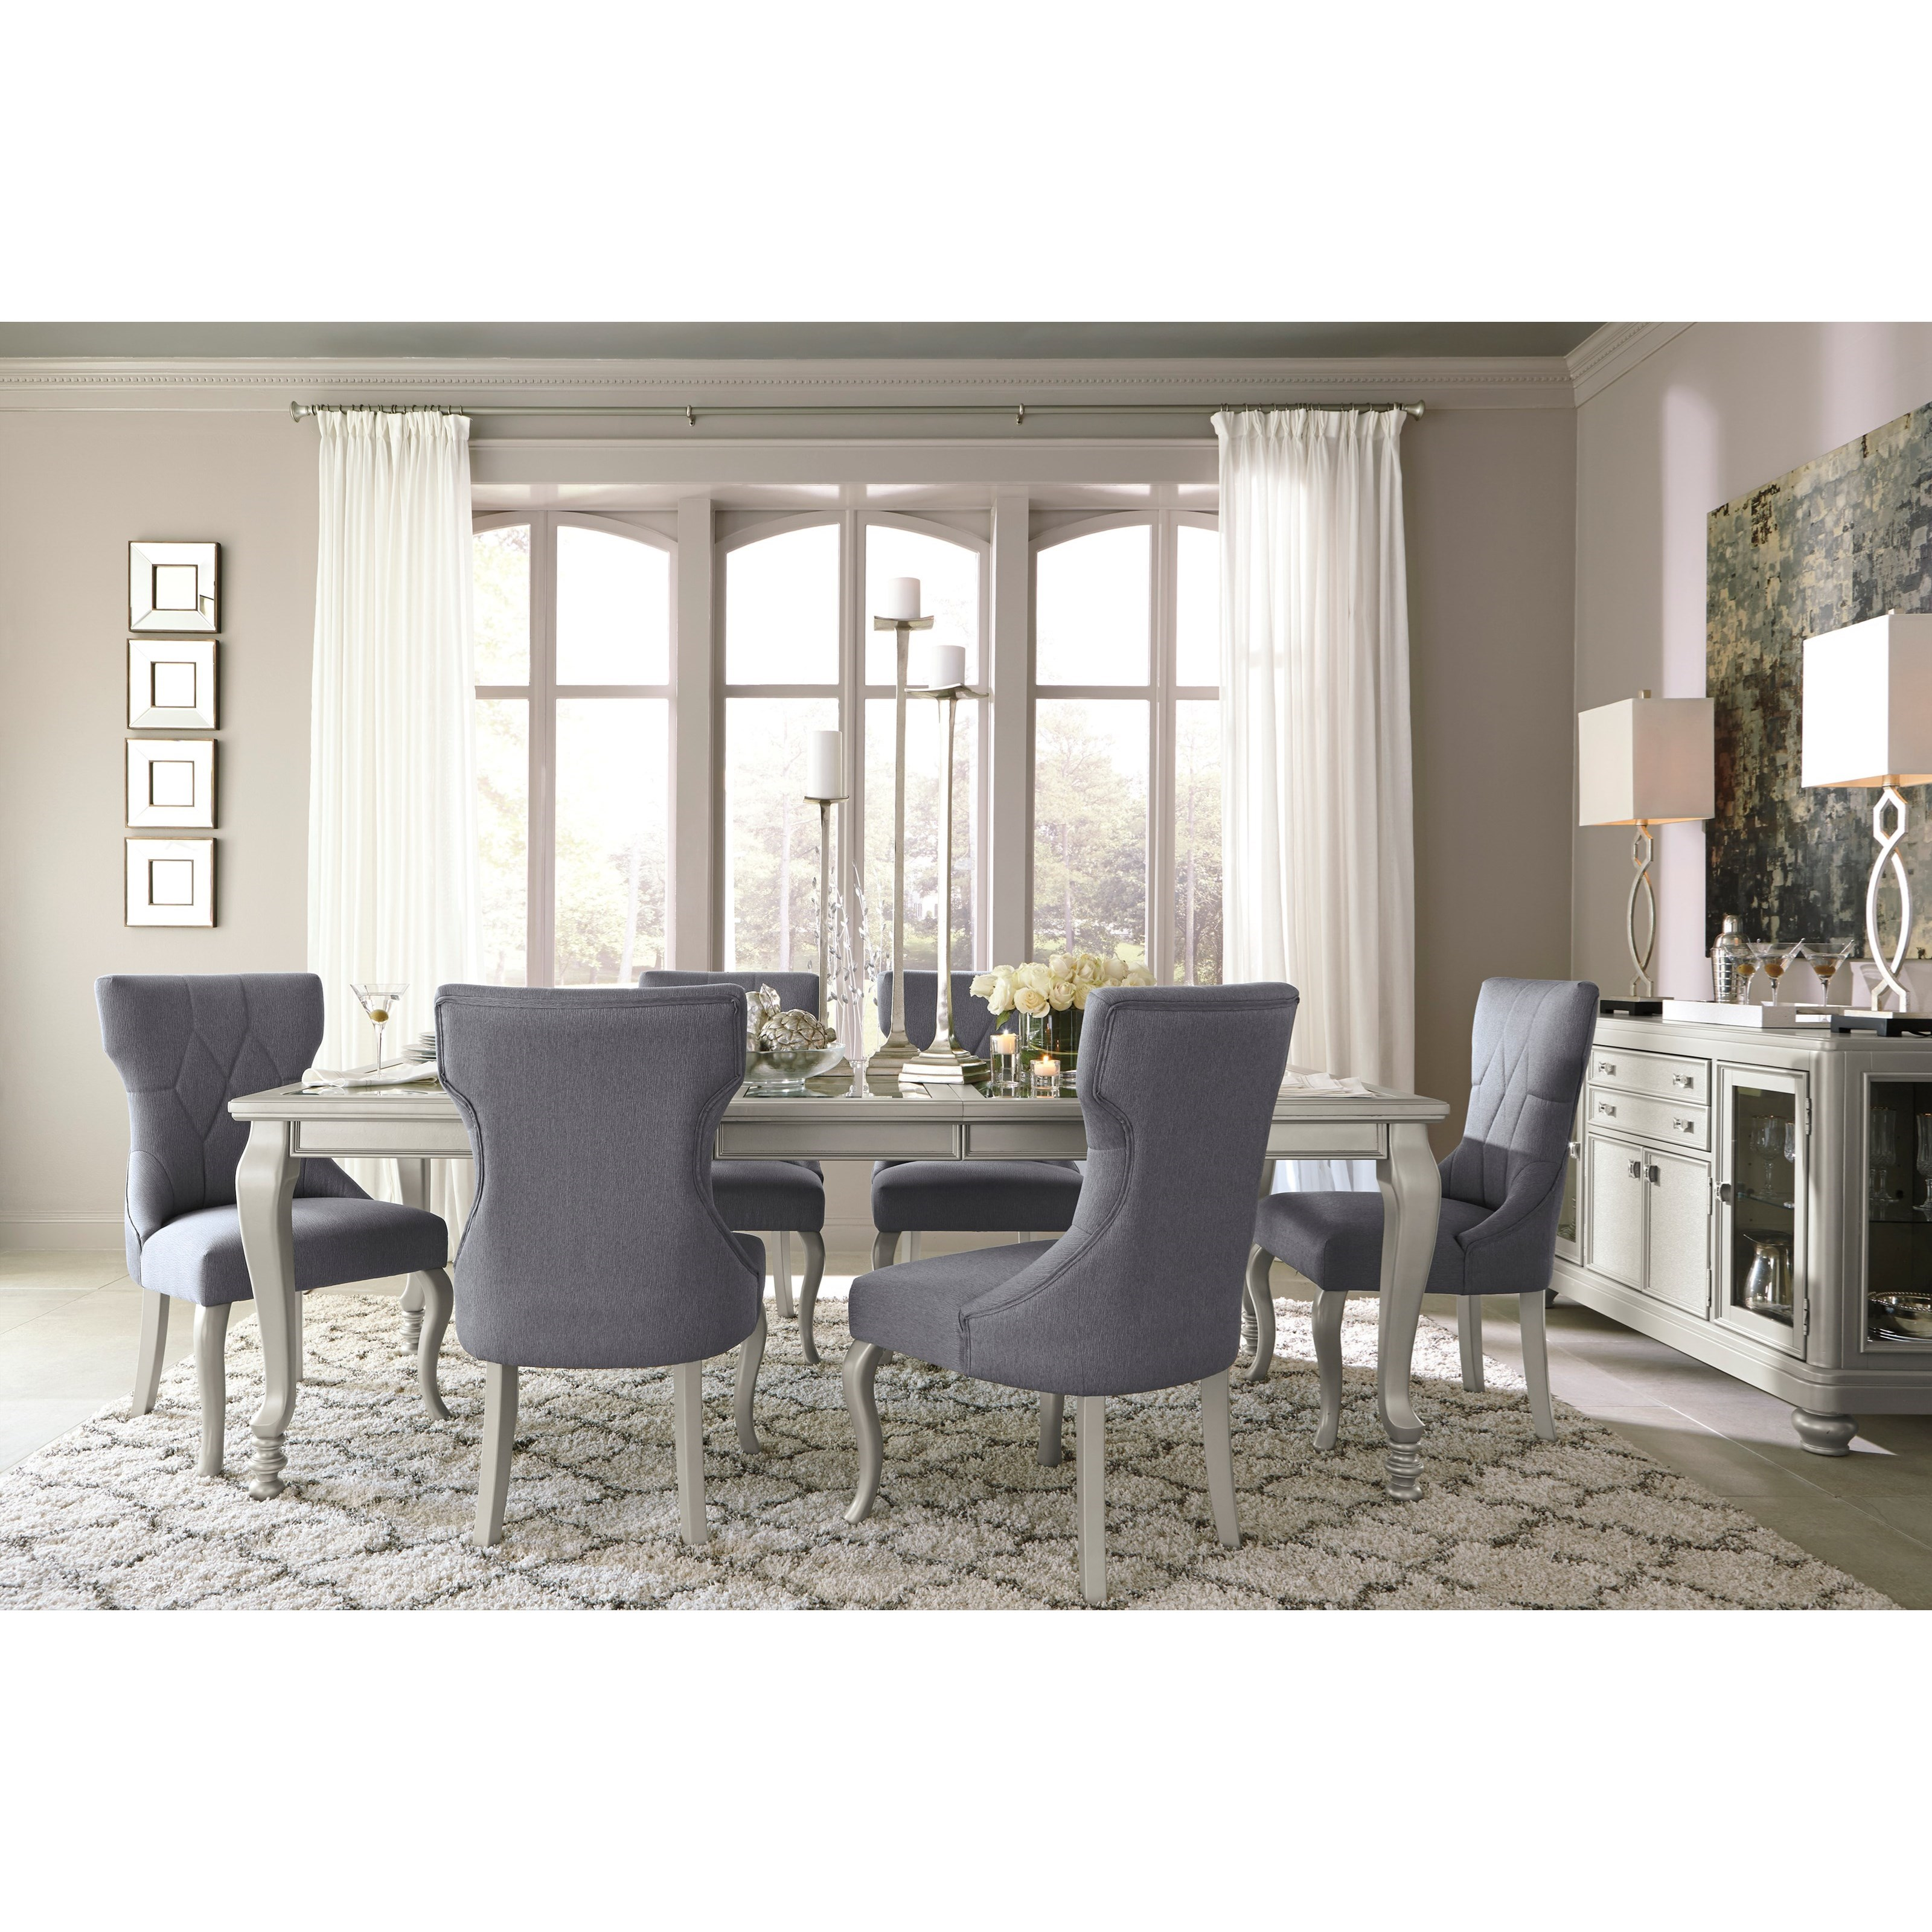 Rectangular Dining Room Extension Table with Glass Inserts by